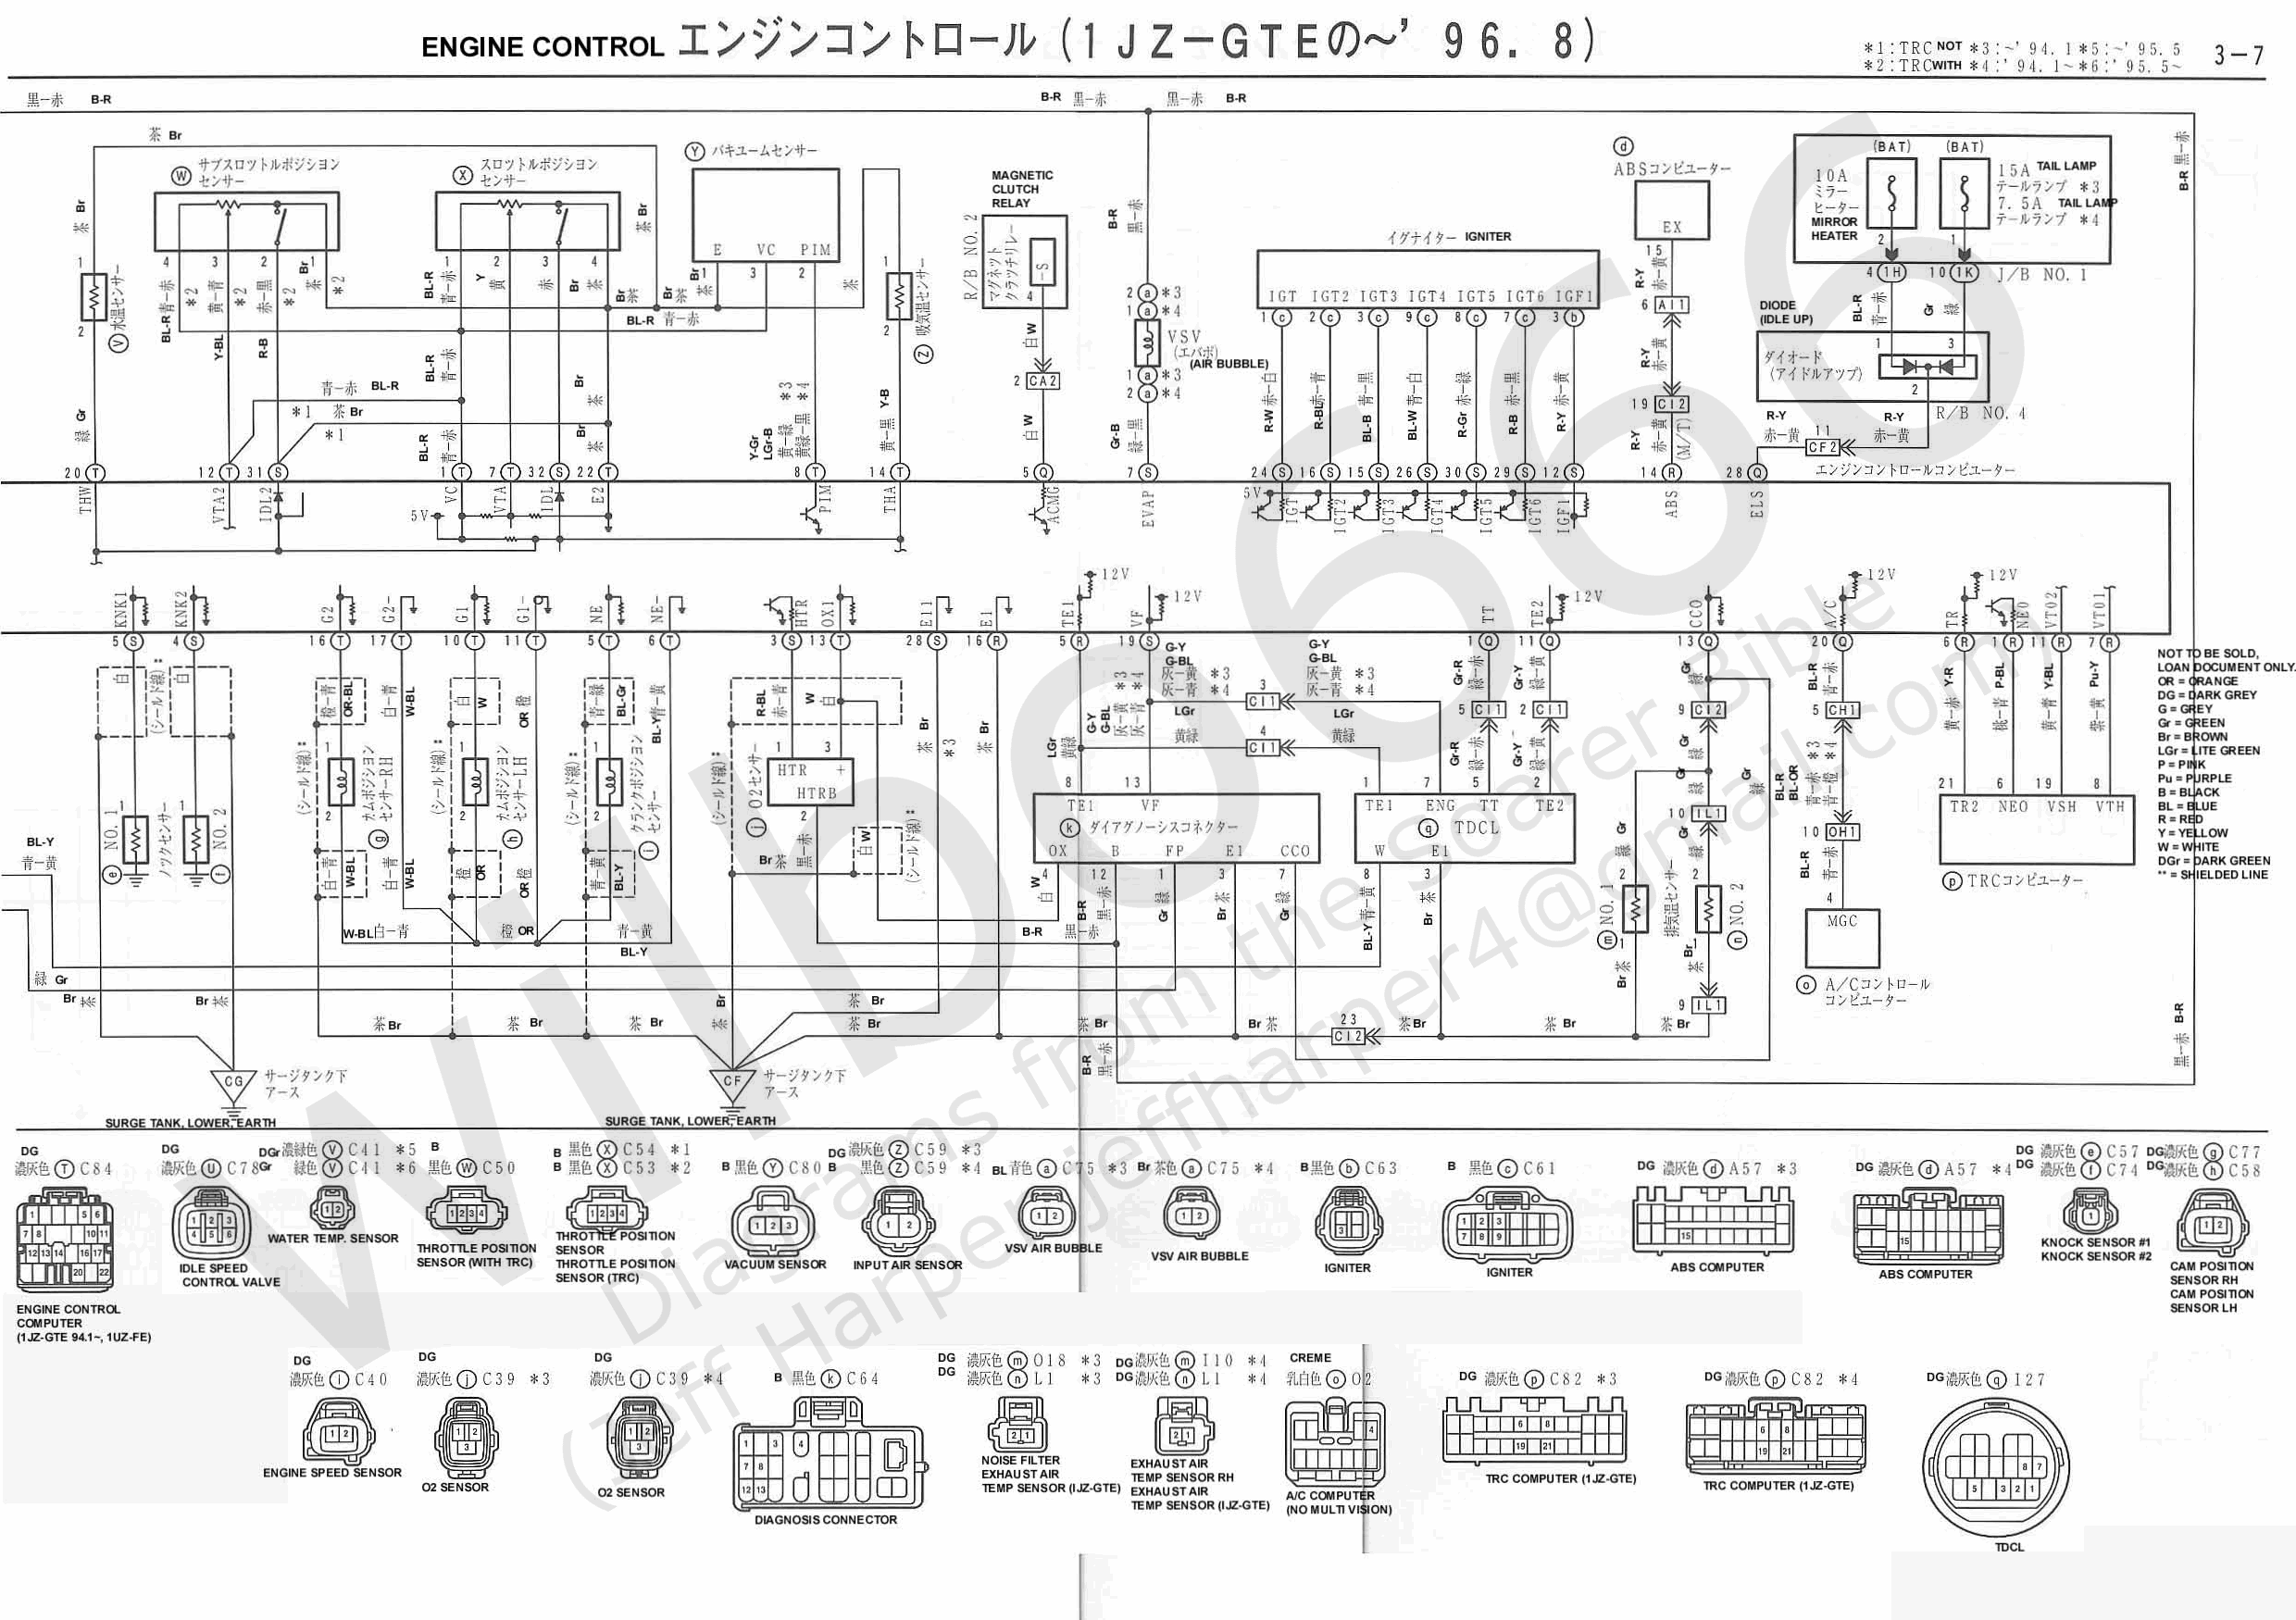 xZZ3x Electrical Wiring Diagram 6737105 3 7 1jz wiring diagram light switch wiring diagram \u2022 free wiring  at readyjetset.co